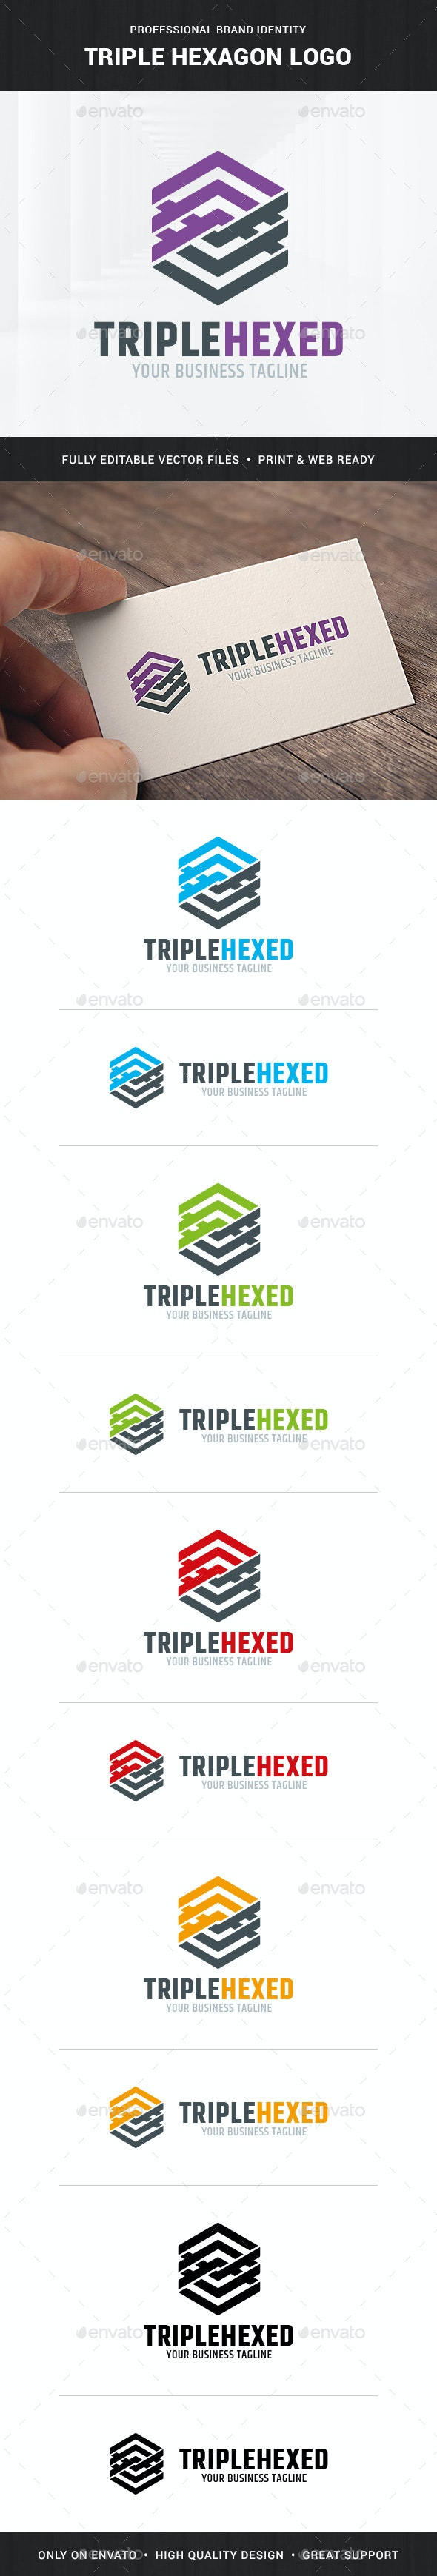 Triple Hexagon Logo Template - Vector Abstract